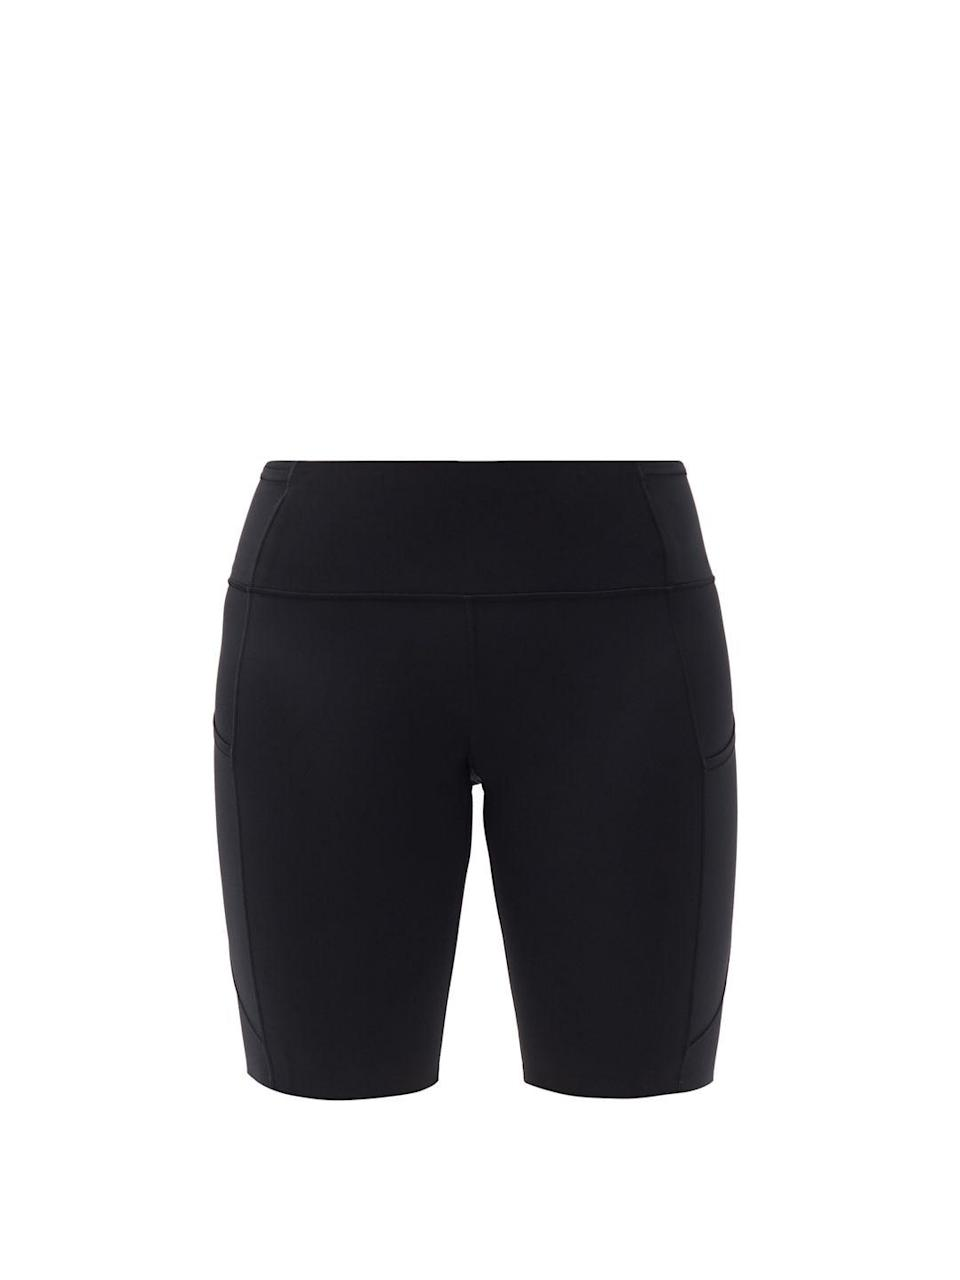 """<p>Bicycle shorts are often overlooked as being merely loungewear, but they can look smart-casual when paired with an oversize shirt and crisp white trainers.</p><p><a class=""""link rapid-noclick-resp"""" href=""""https://go.redirectingat.com?id=127X1599956&url=https%3A%2F%2Fwww.matchesfashion.com%2Fproducts%2FLululemon-Fast-and-Free-high-rise-10%2522-shorts-1410409&sref=https%3A%2F%2Fwww.townandcountrymag.com%2Fuk%2Fstyle%2Fg35807920%2Ftransitional-clothing%2F"""" rel=""""nofollow noopener"""" target=""""_blank"""" data-ylk=""""slk:SHOP NOW"""">SHOP NOW</a></p><p>£58, LuluLemon at MatchesFashion.com.</p>"""